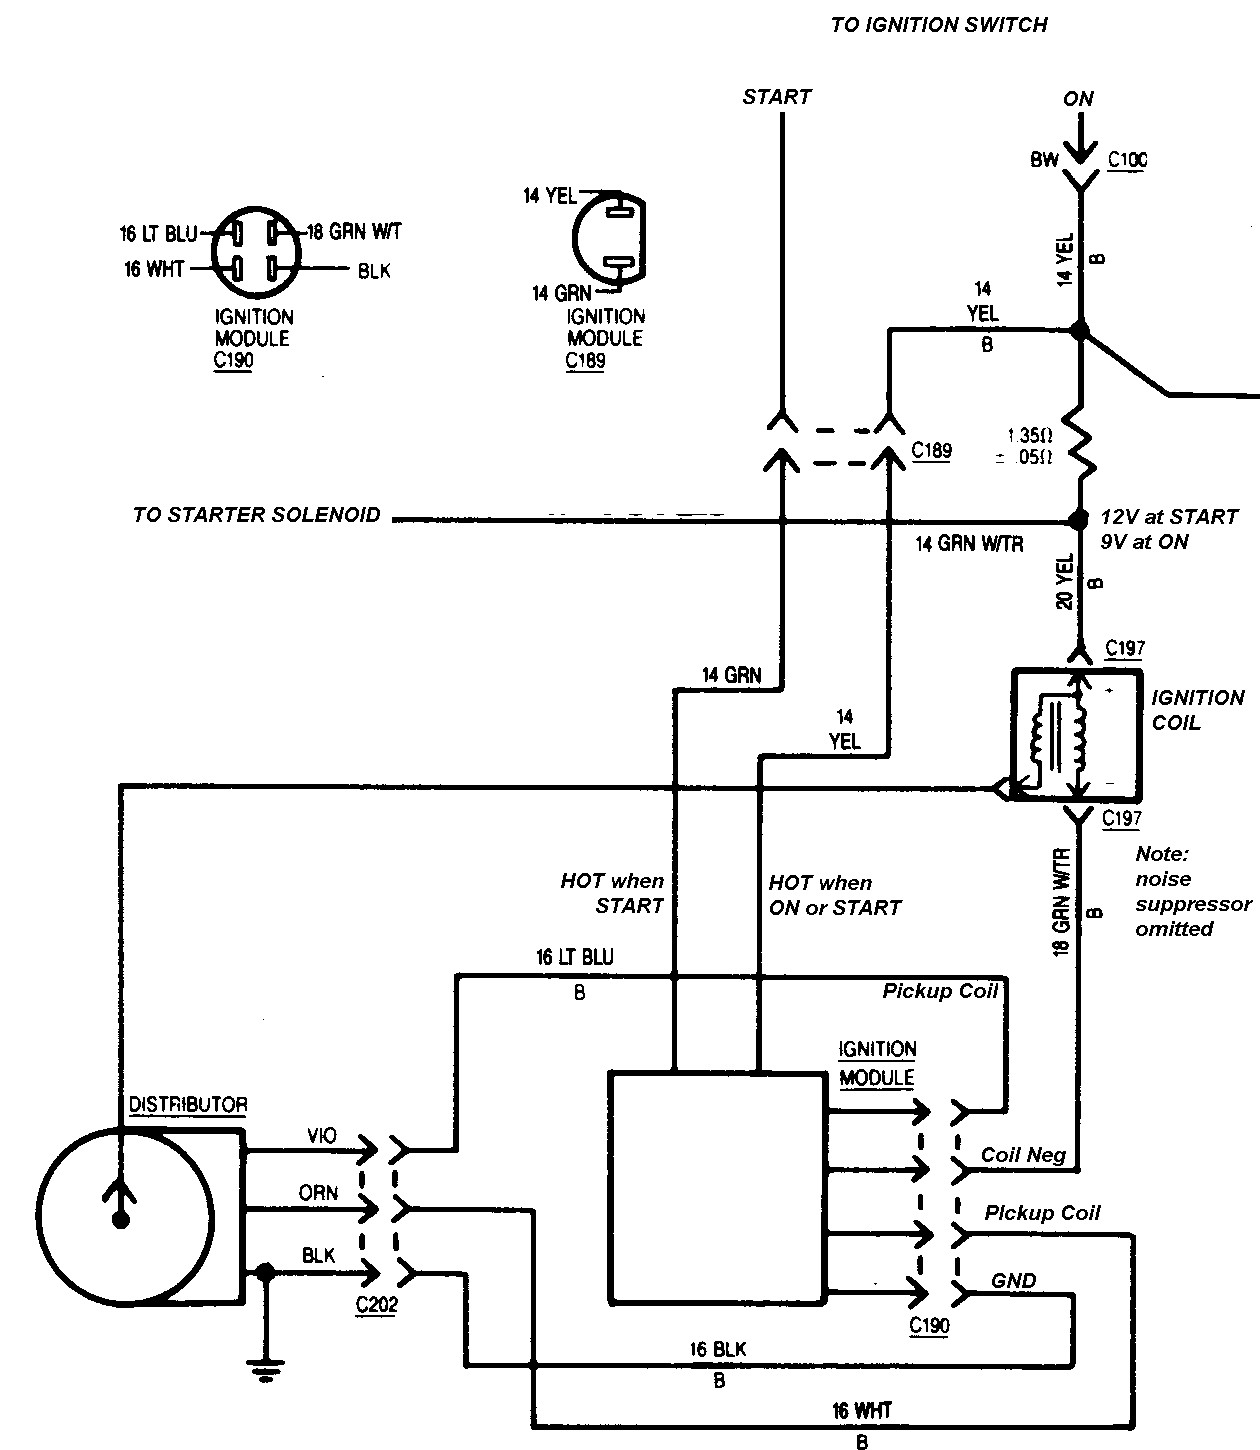 medium resolution of 1977 chevy 350 distributor wiring diagram